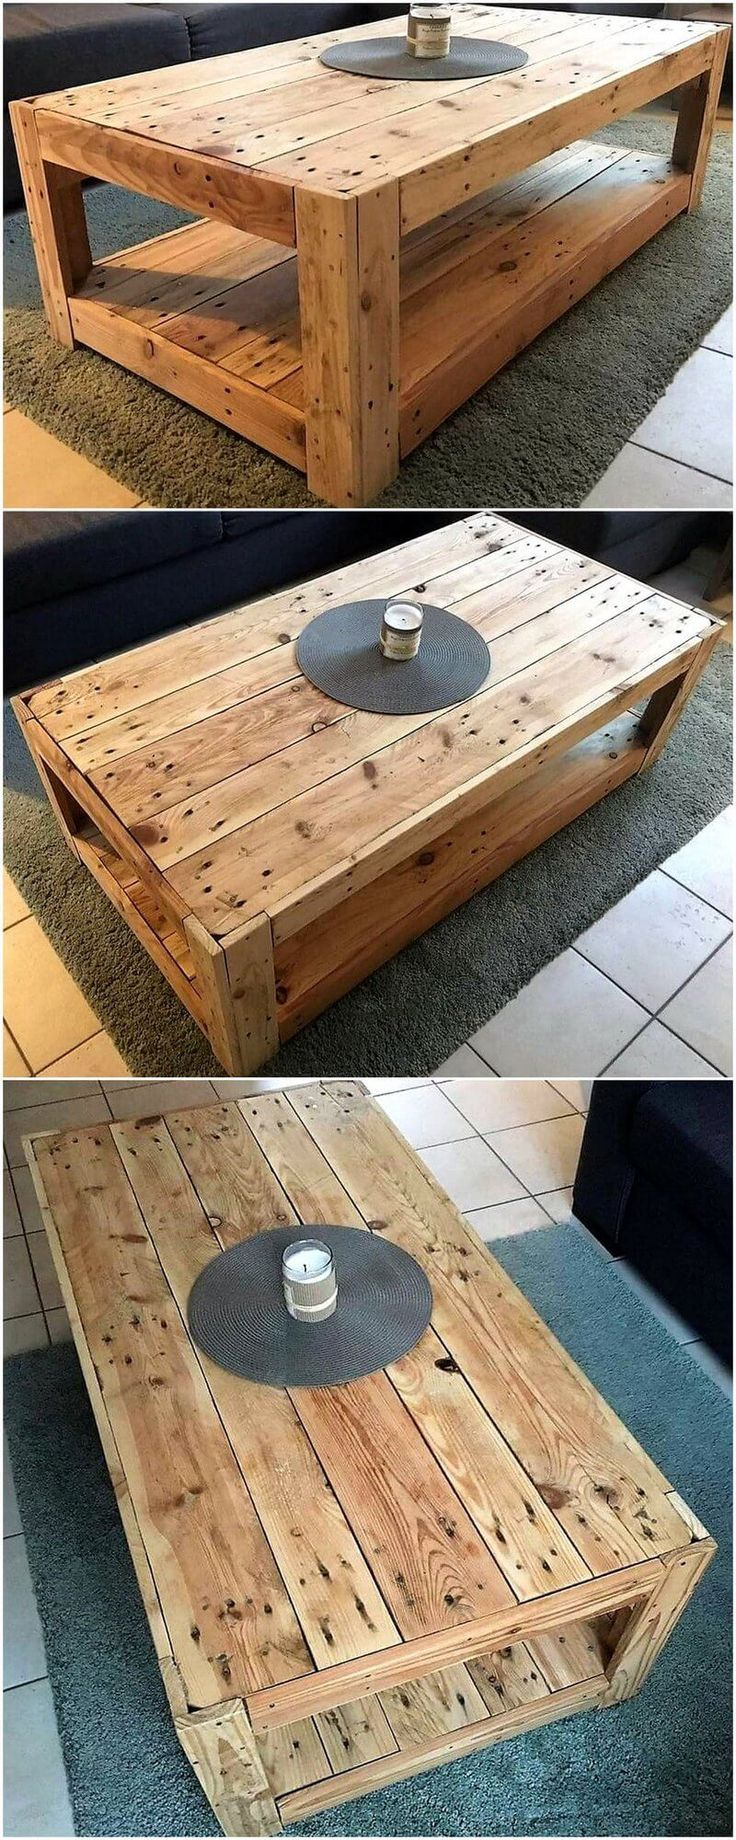 Coffee Table Made With Reclaimed Pallet Wood Hit The Google Link For More Pics Coffee Table Out Of Pallets Wood Pallet Projects Coffee Table Made From Pallets [ 2606 x 2822 Pixel ]